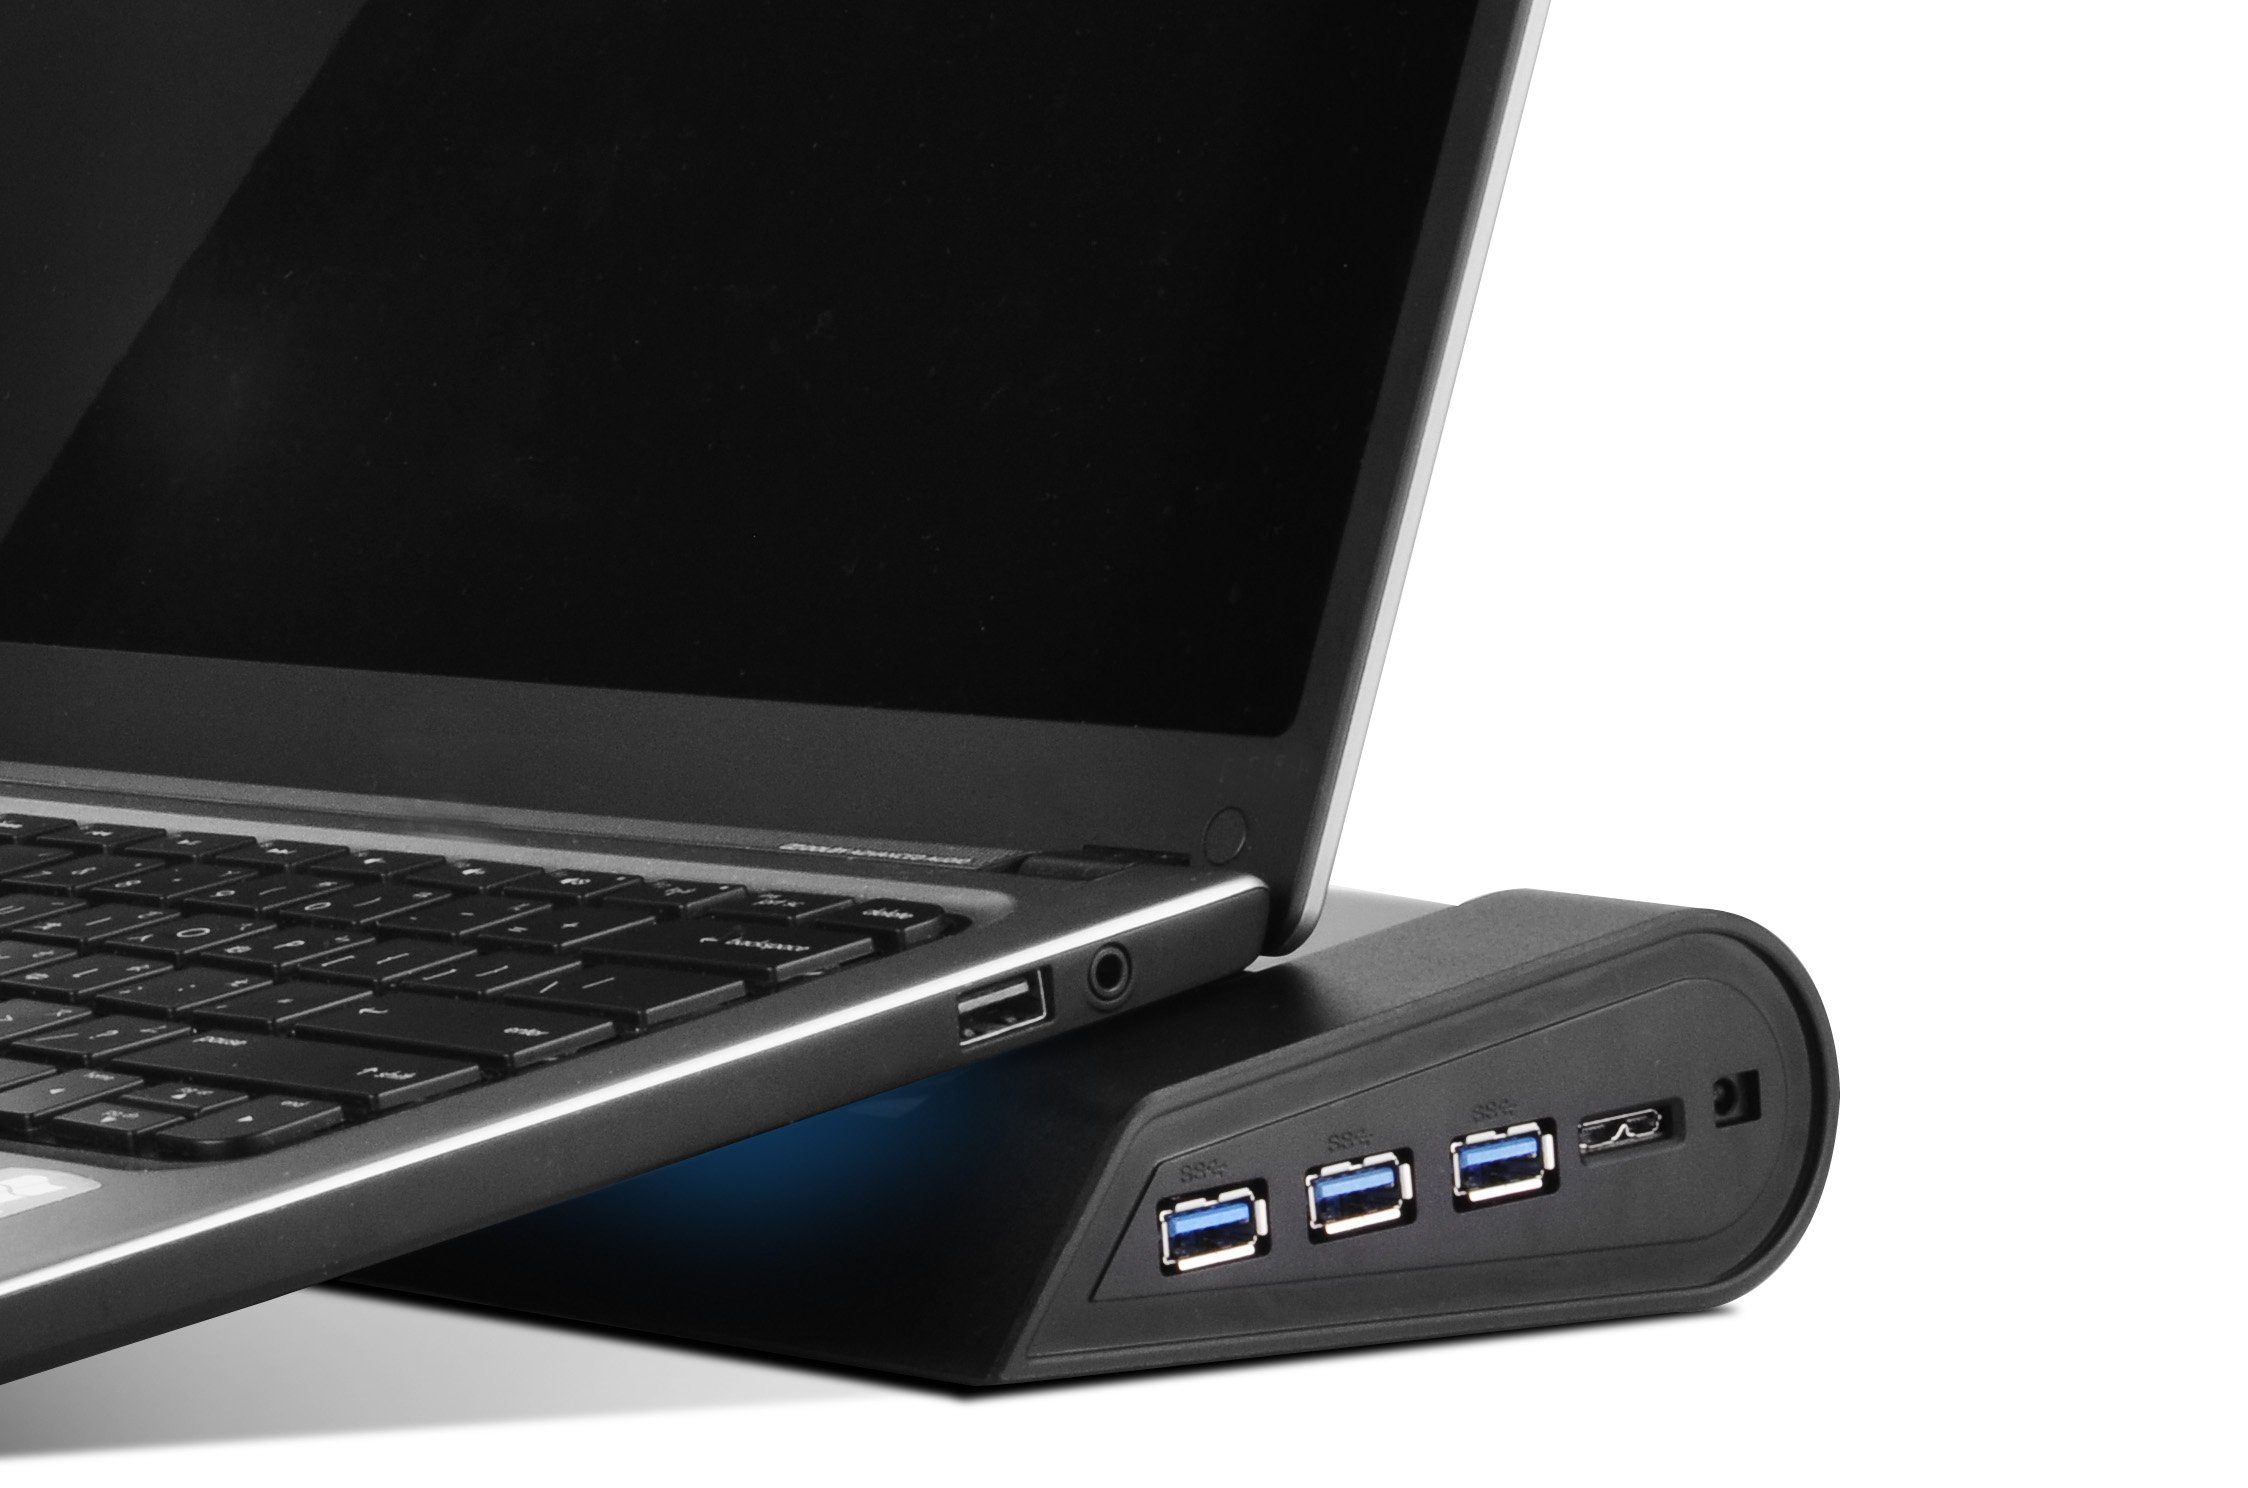 Silverstone Tek Multifunctional Laptop Cooler with Crossflow Fan, Networking Capabilities and 3x SuperSpeed USB 3.0 Ports (NB05B) by SilverStone Technology (Image #4)